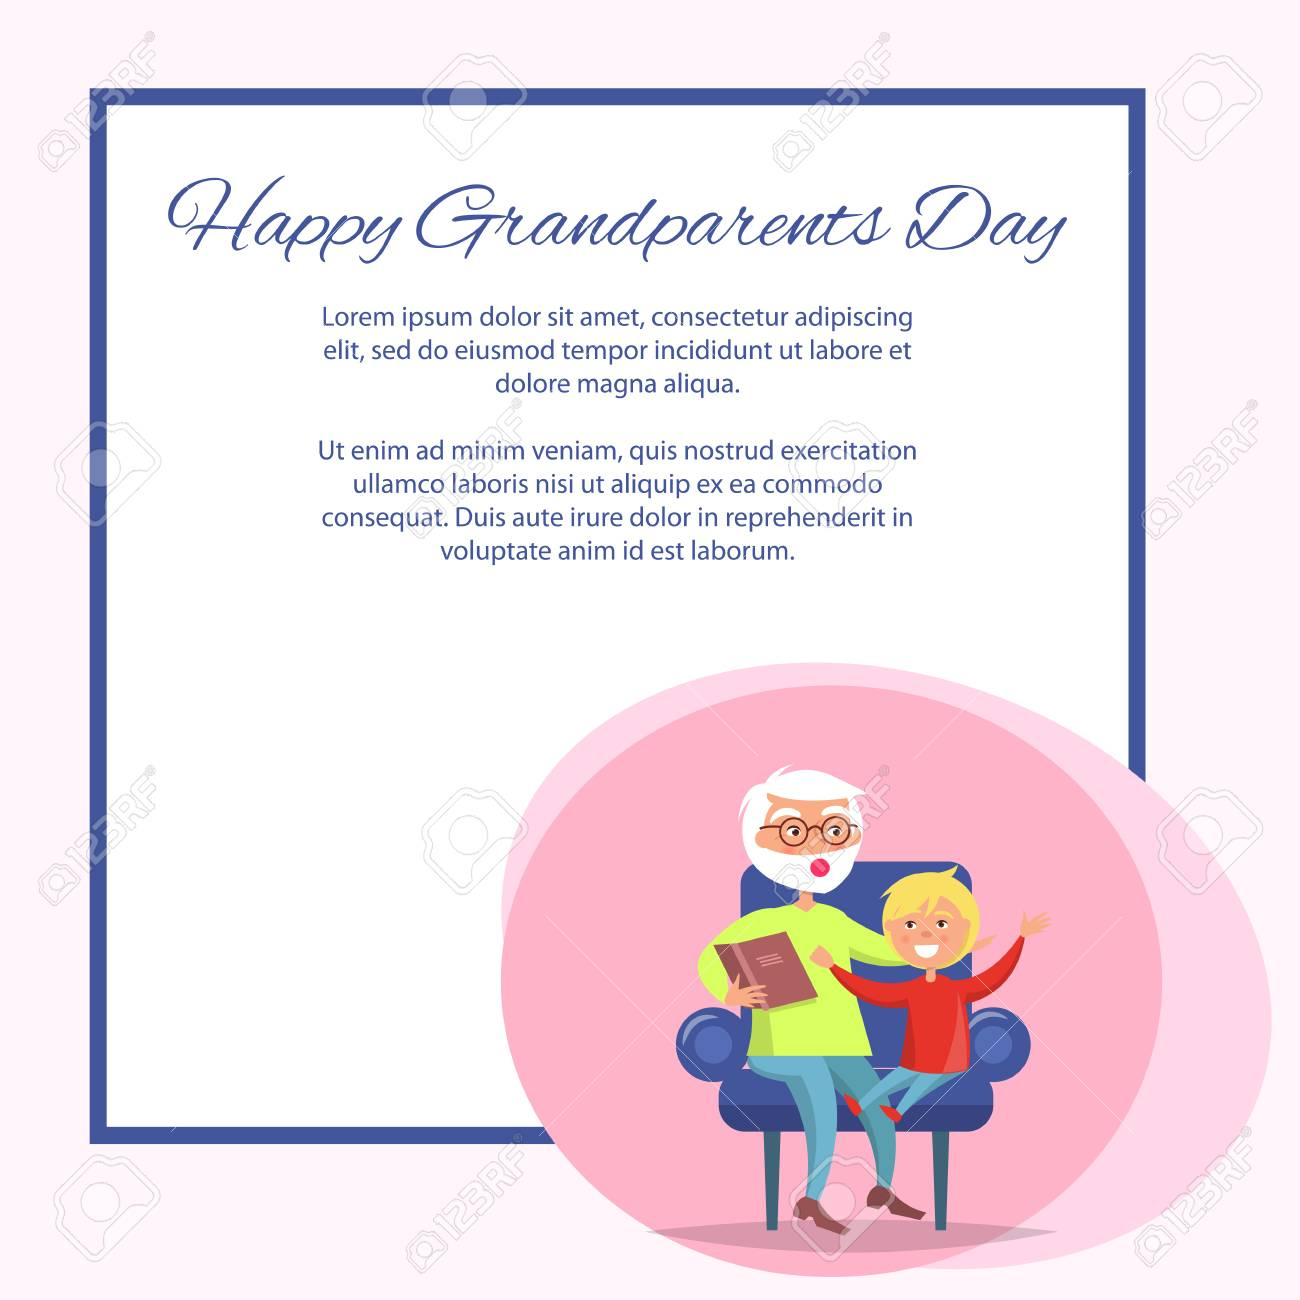 Happy Grandparents Day Grandpa Reading To Grandson Royalty Free Cliparts Vectors And Stock Illustration Image 90750739